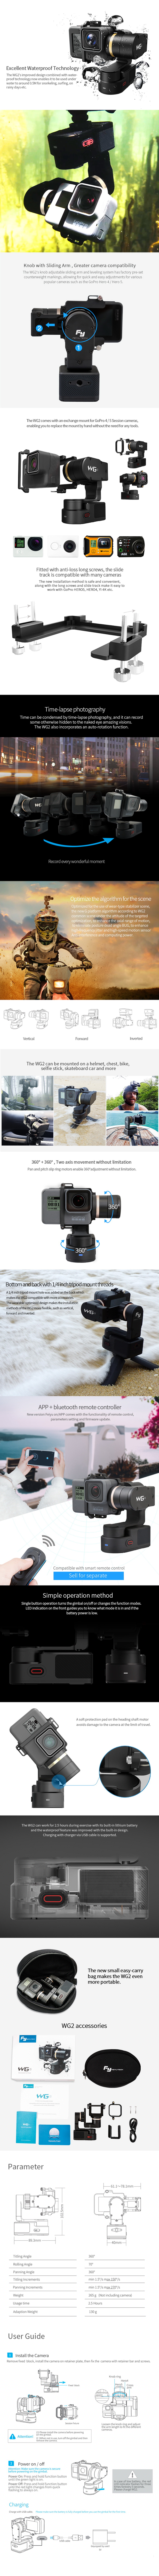 Feiyu Tech WG2 3-Axis Wearable WaterProof Gimbal for GoPro HERO5 4, GoPro5 4 Session & Action Camera (1)